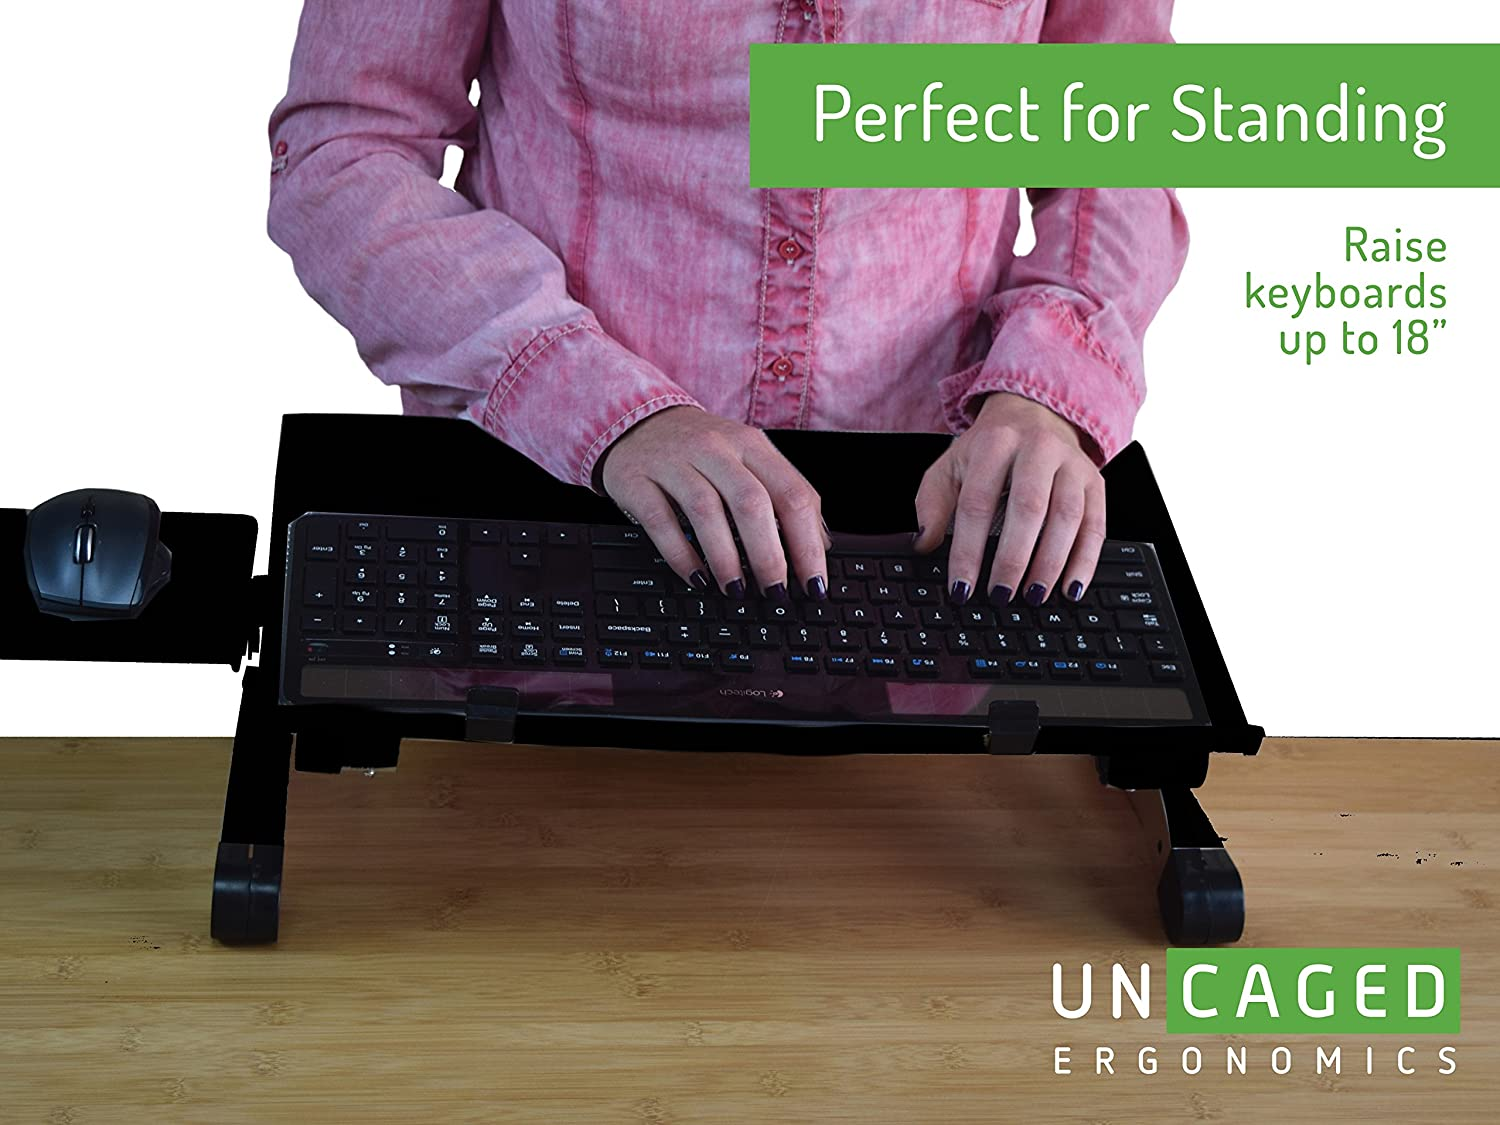 Amazon.com: Uncaged Ergonomics WorkEZ Keyboard Tray U0026 Mouse Pad, Adjustable  Height U0026 Angle Ergonomic Standing Computer Keyboard Stand, Black (WEKTb):  Office ...